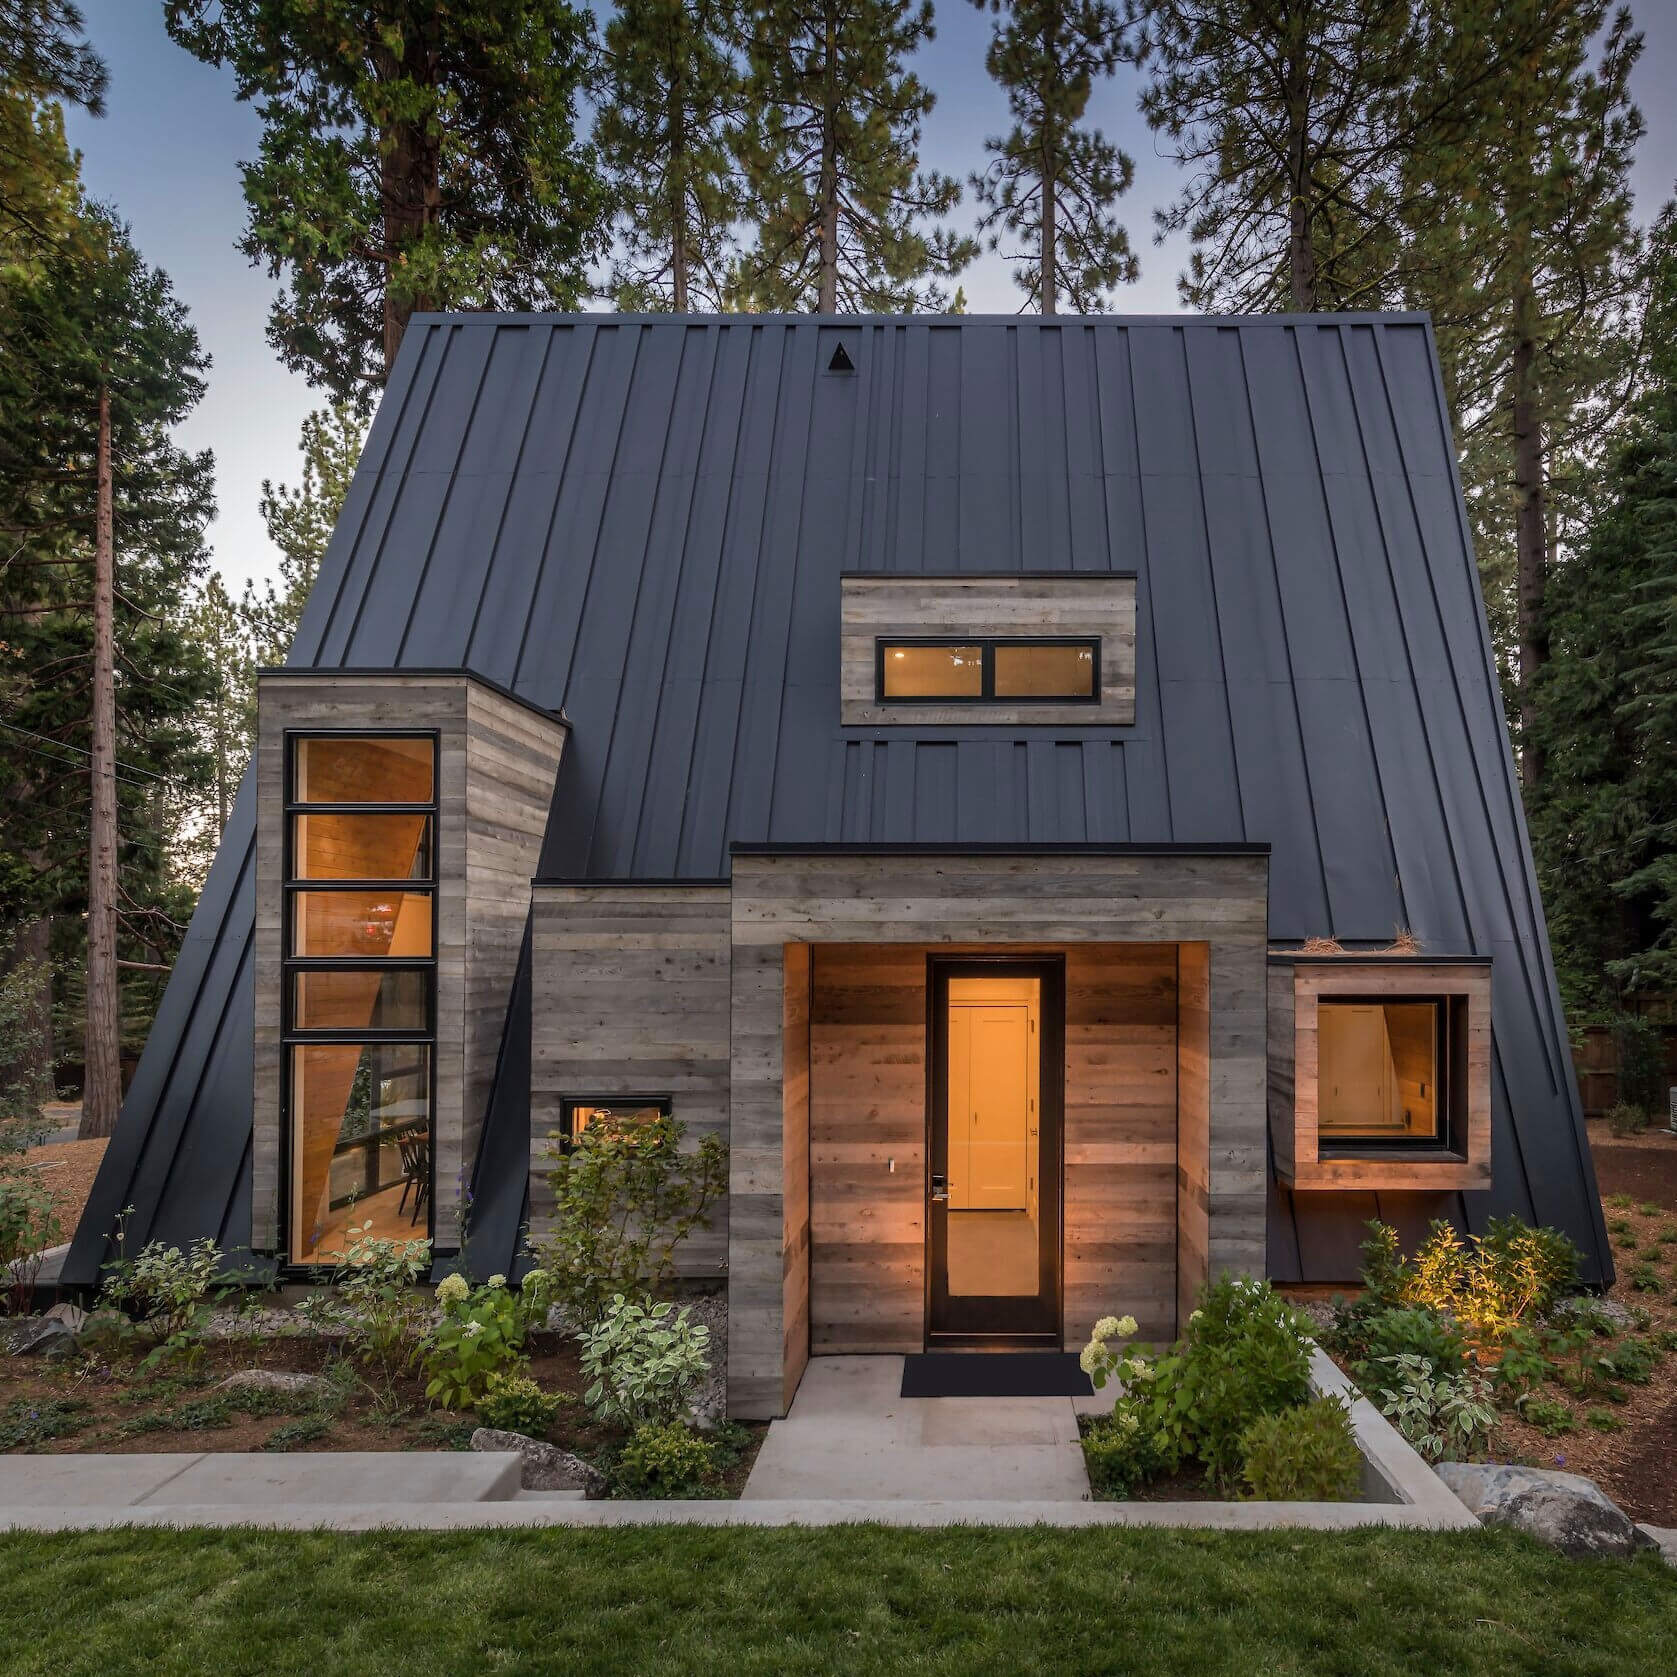 Mountain-Style A-Frame Cabin by Todd Gordon Mather Architect